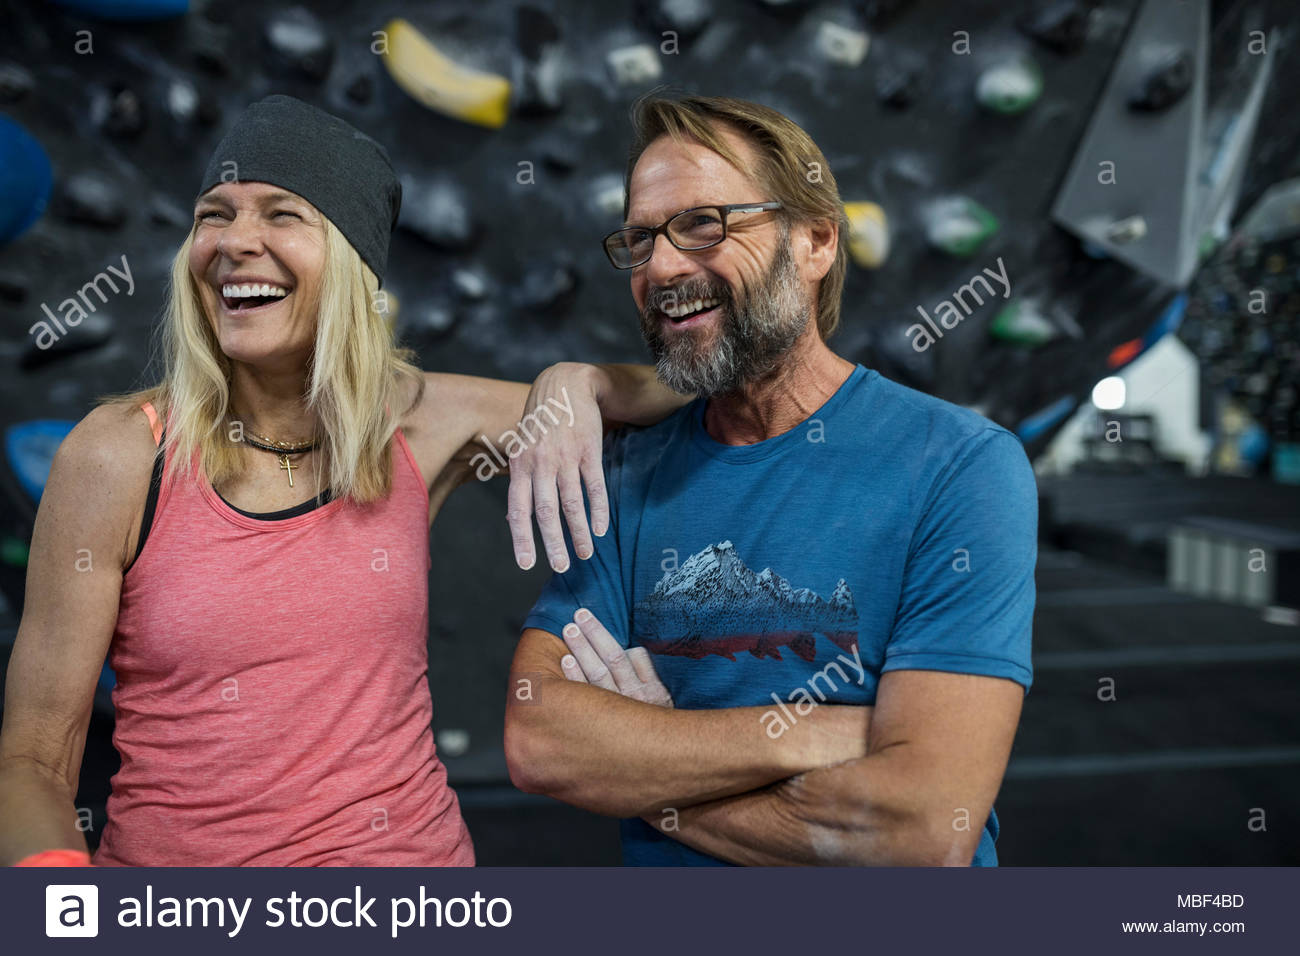 Happy mature couple rock climbers laughing at climbing gym - Stock Image